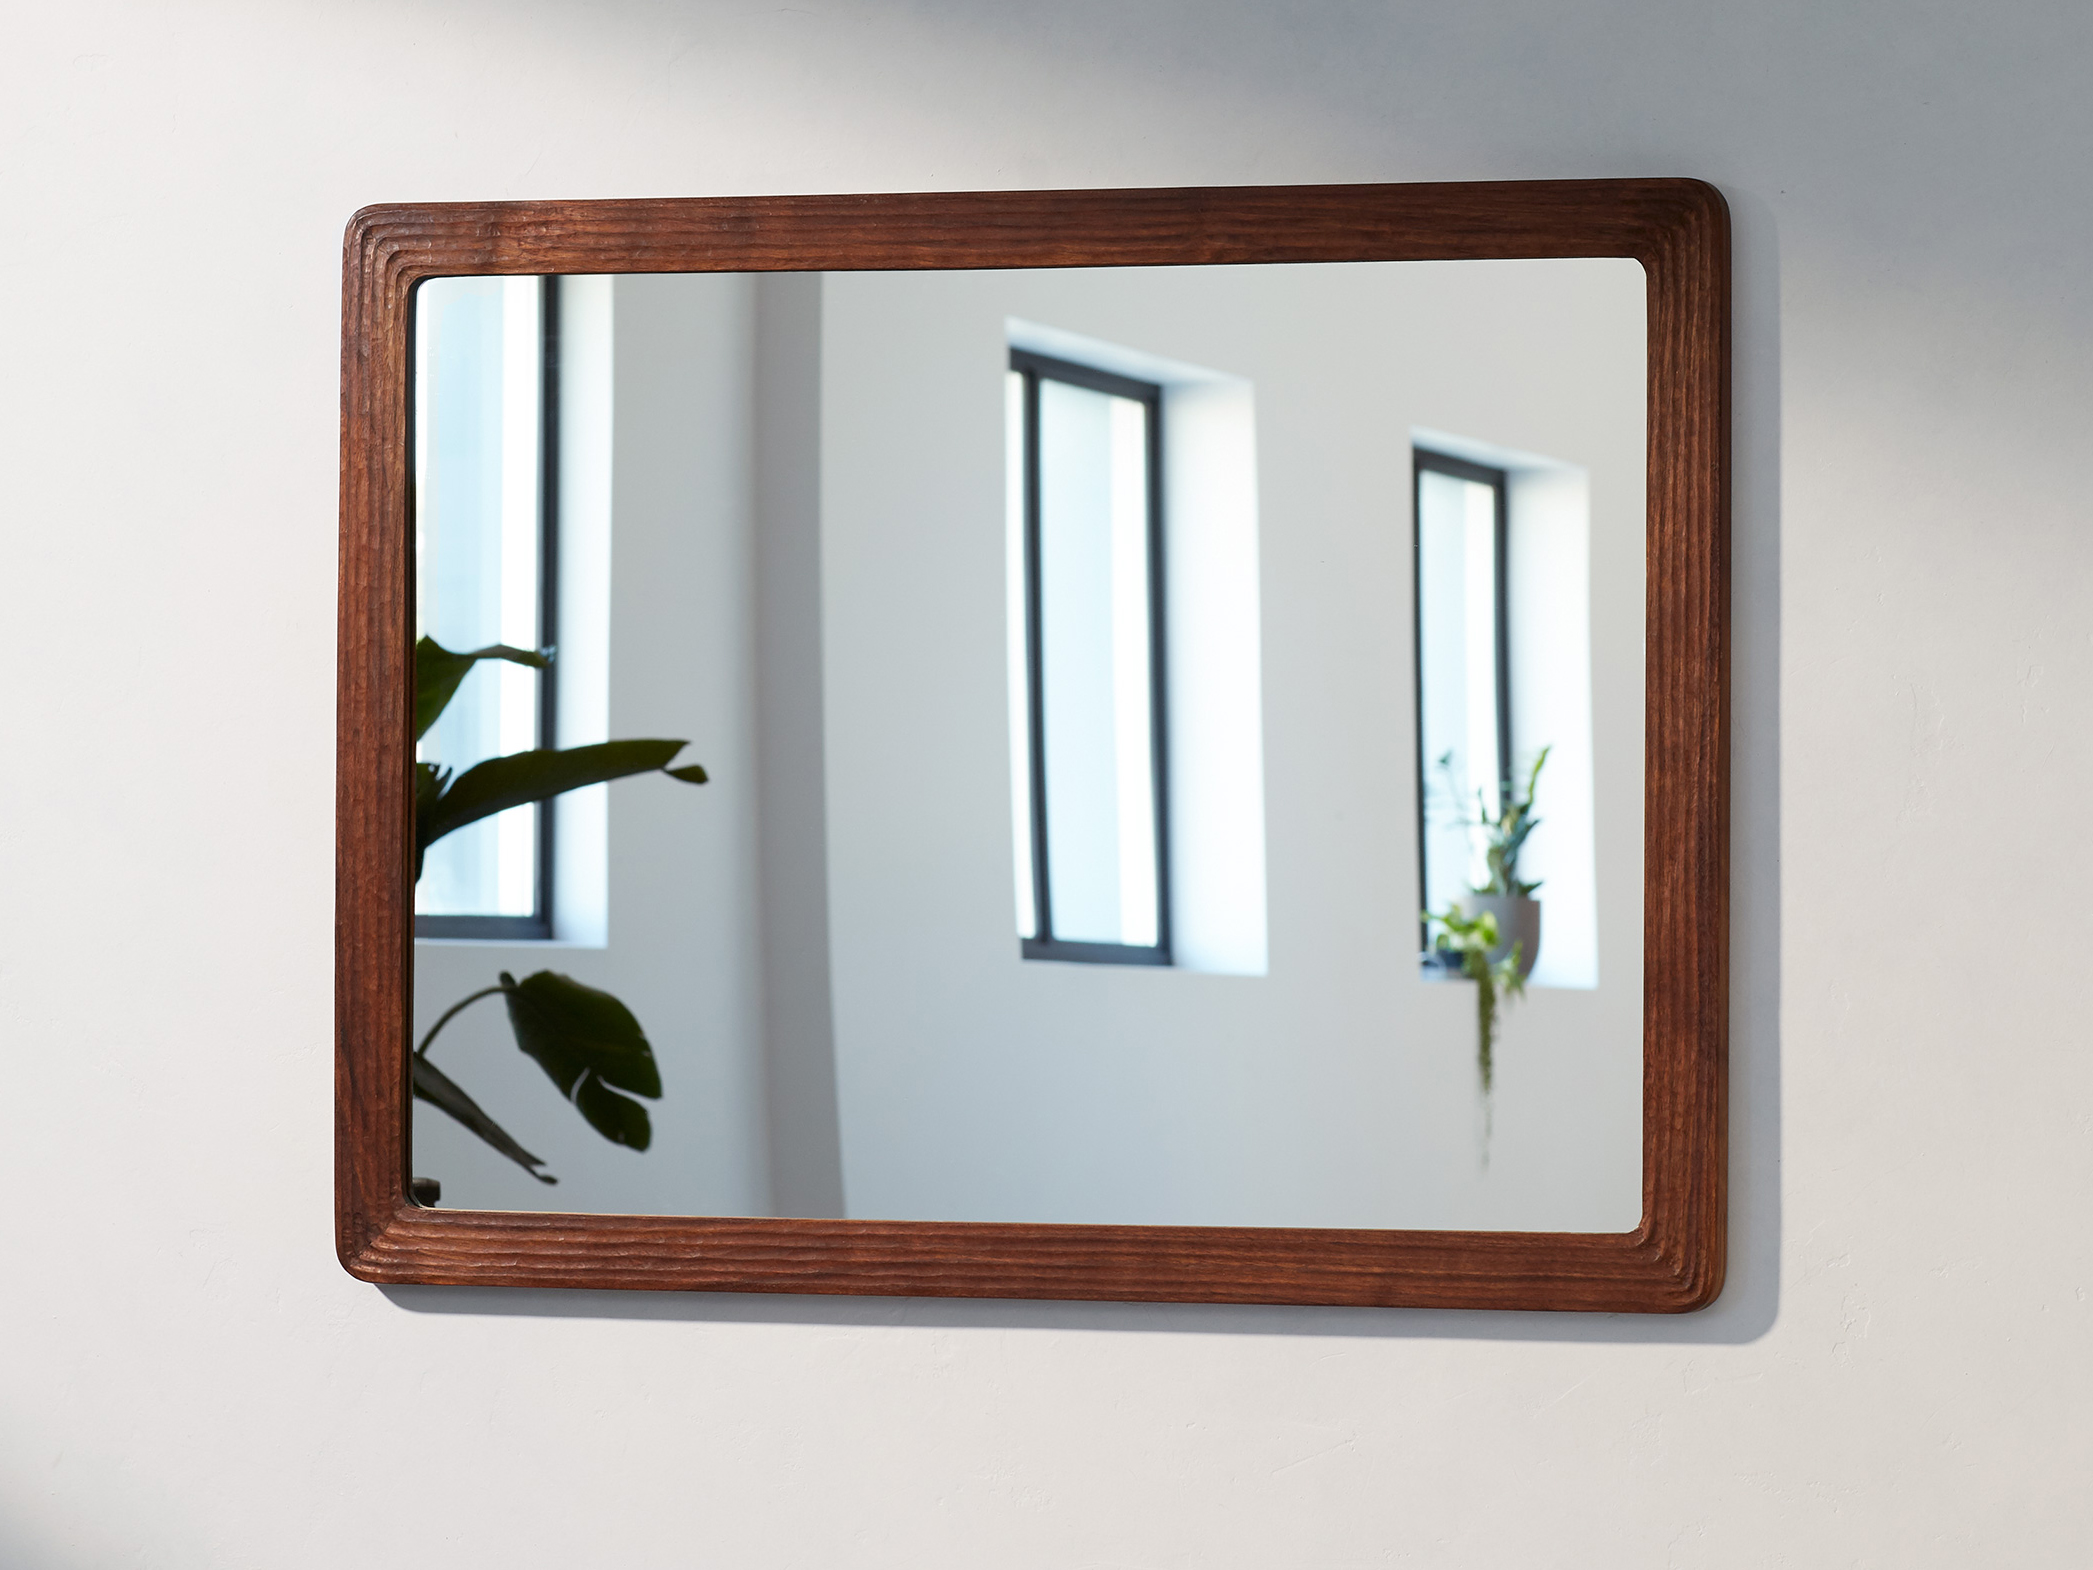 custom modern design mirror emma senft carved walnut made by hand montreal